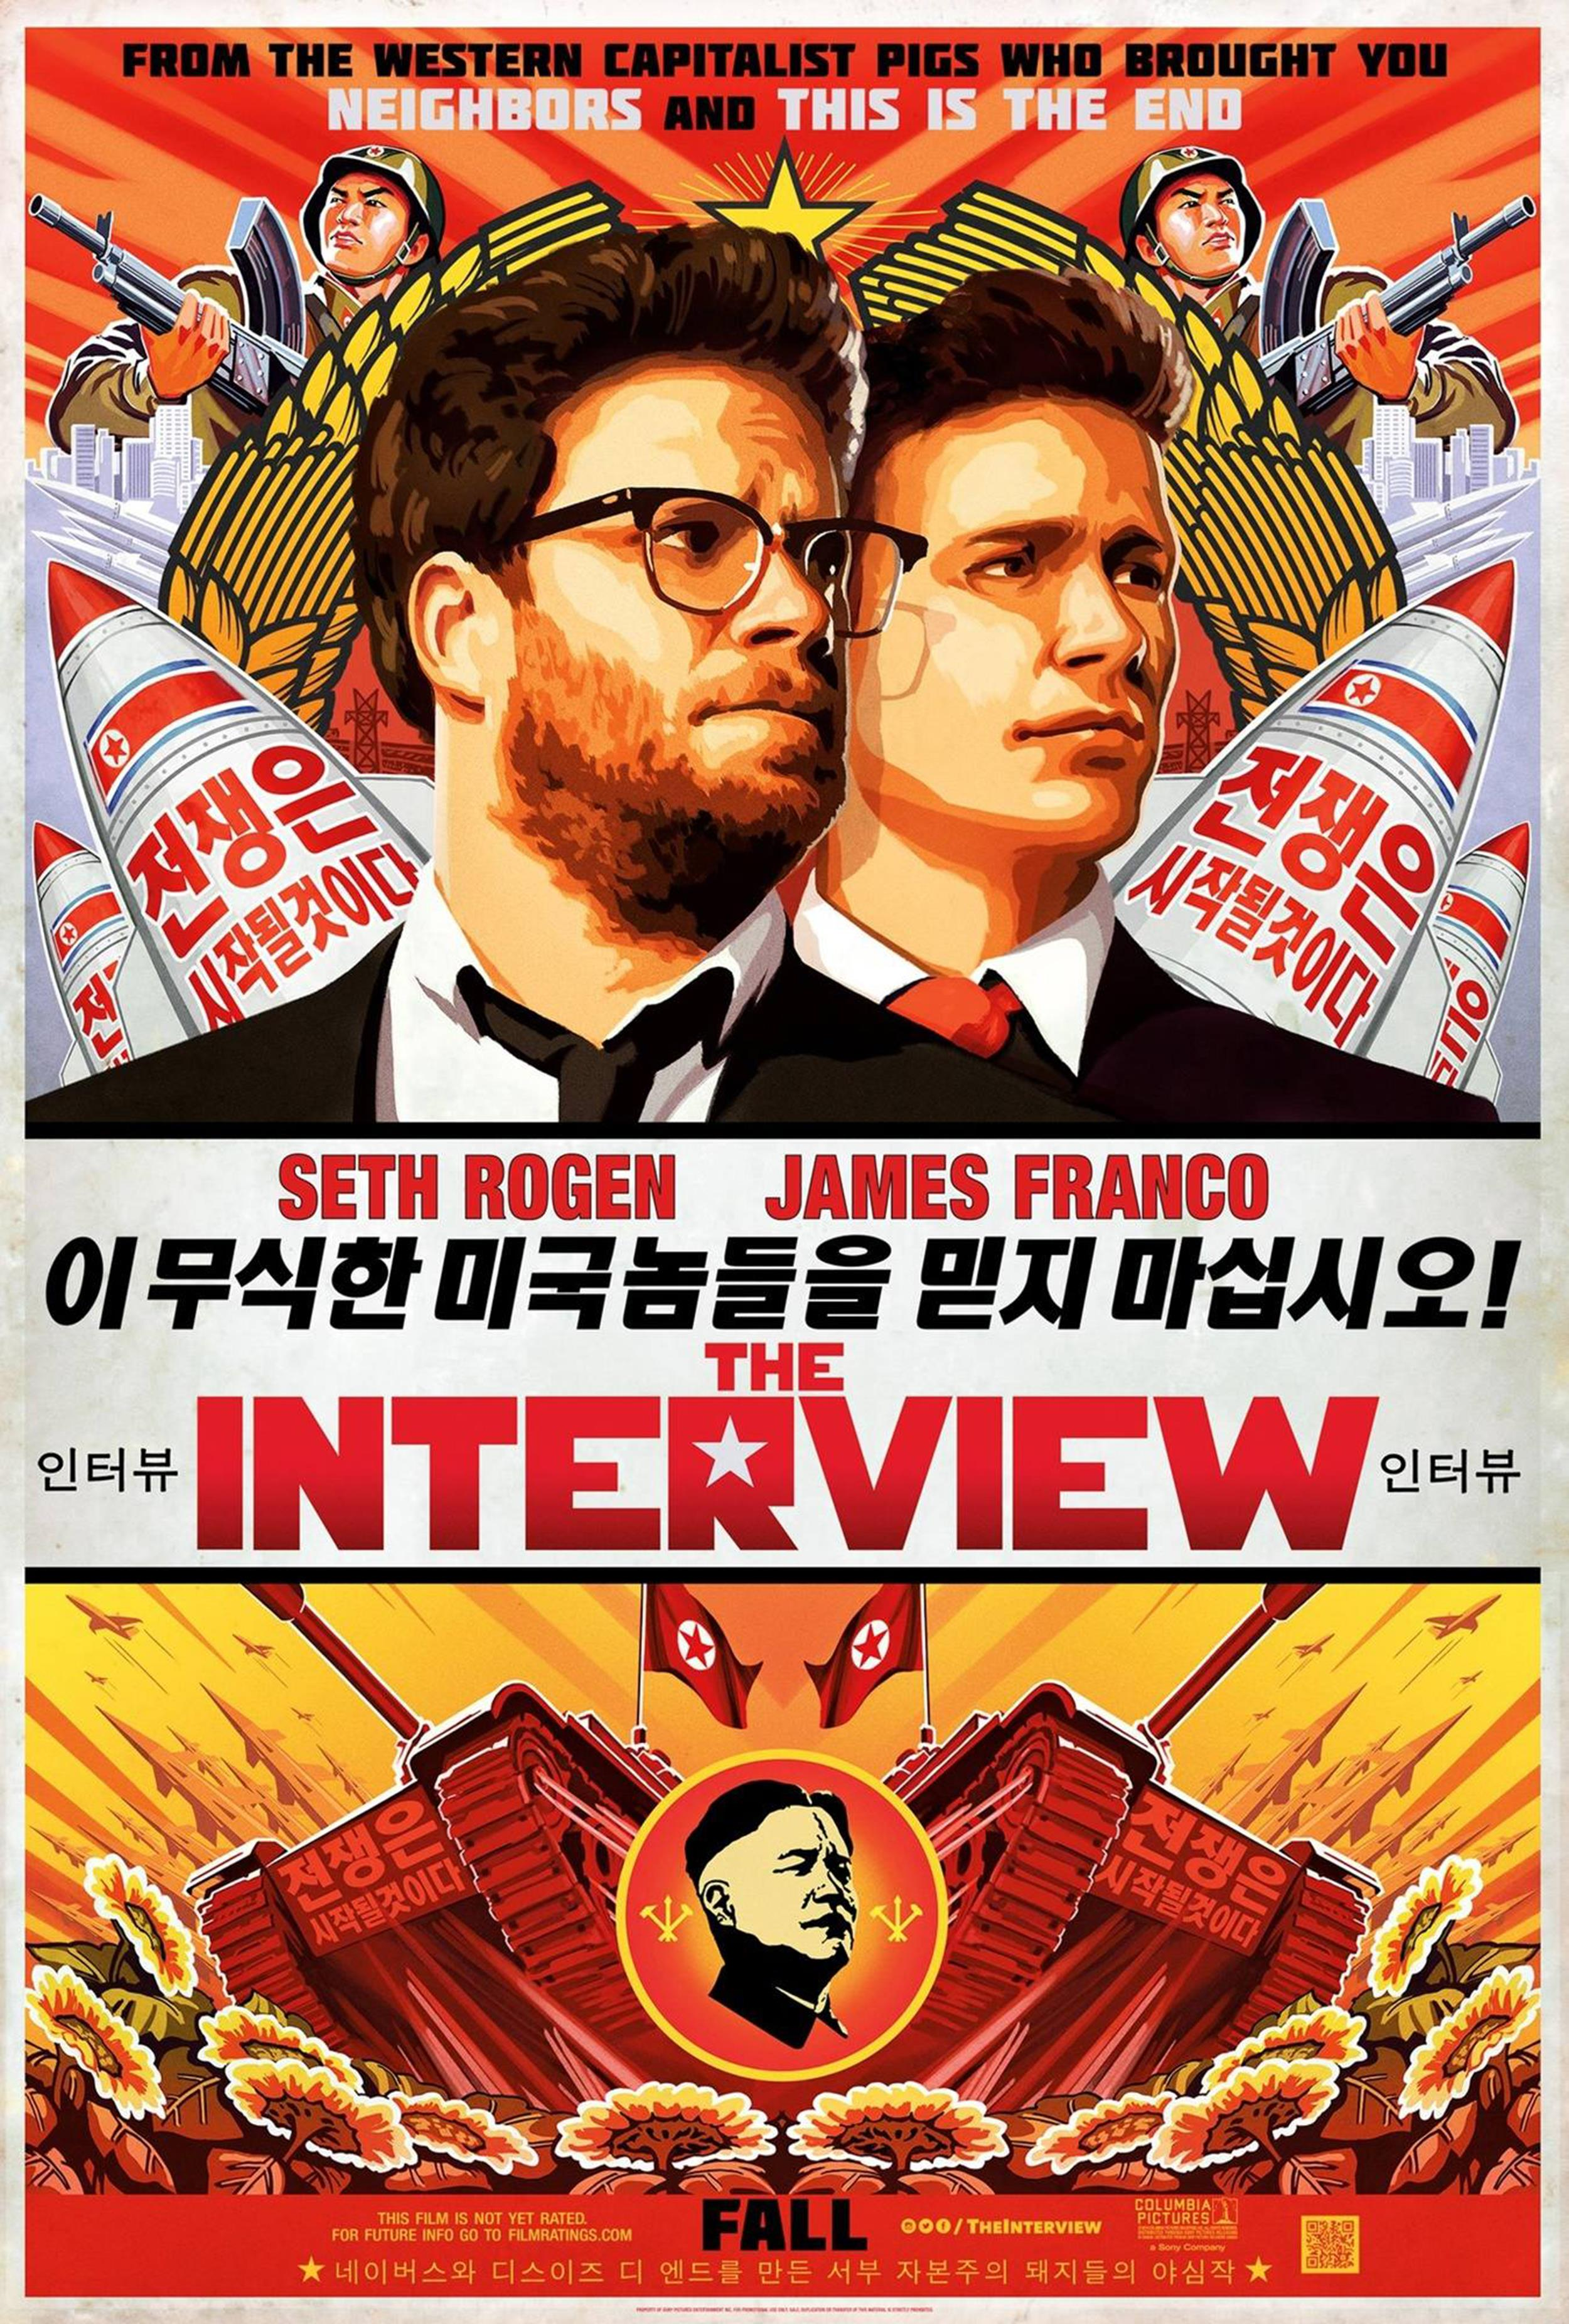 Sony Pictures lawyer says The Interview will still be released